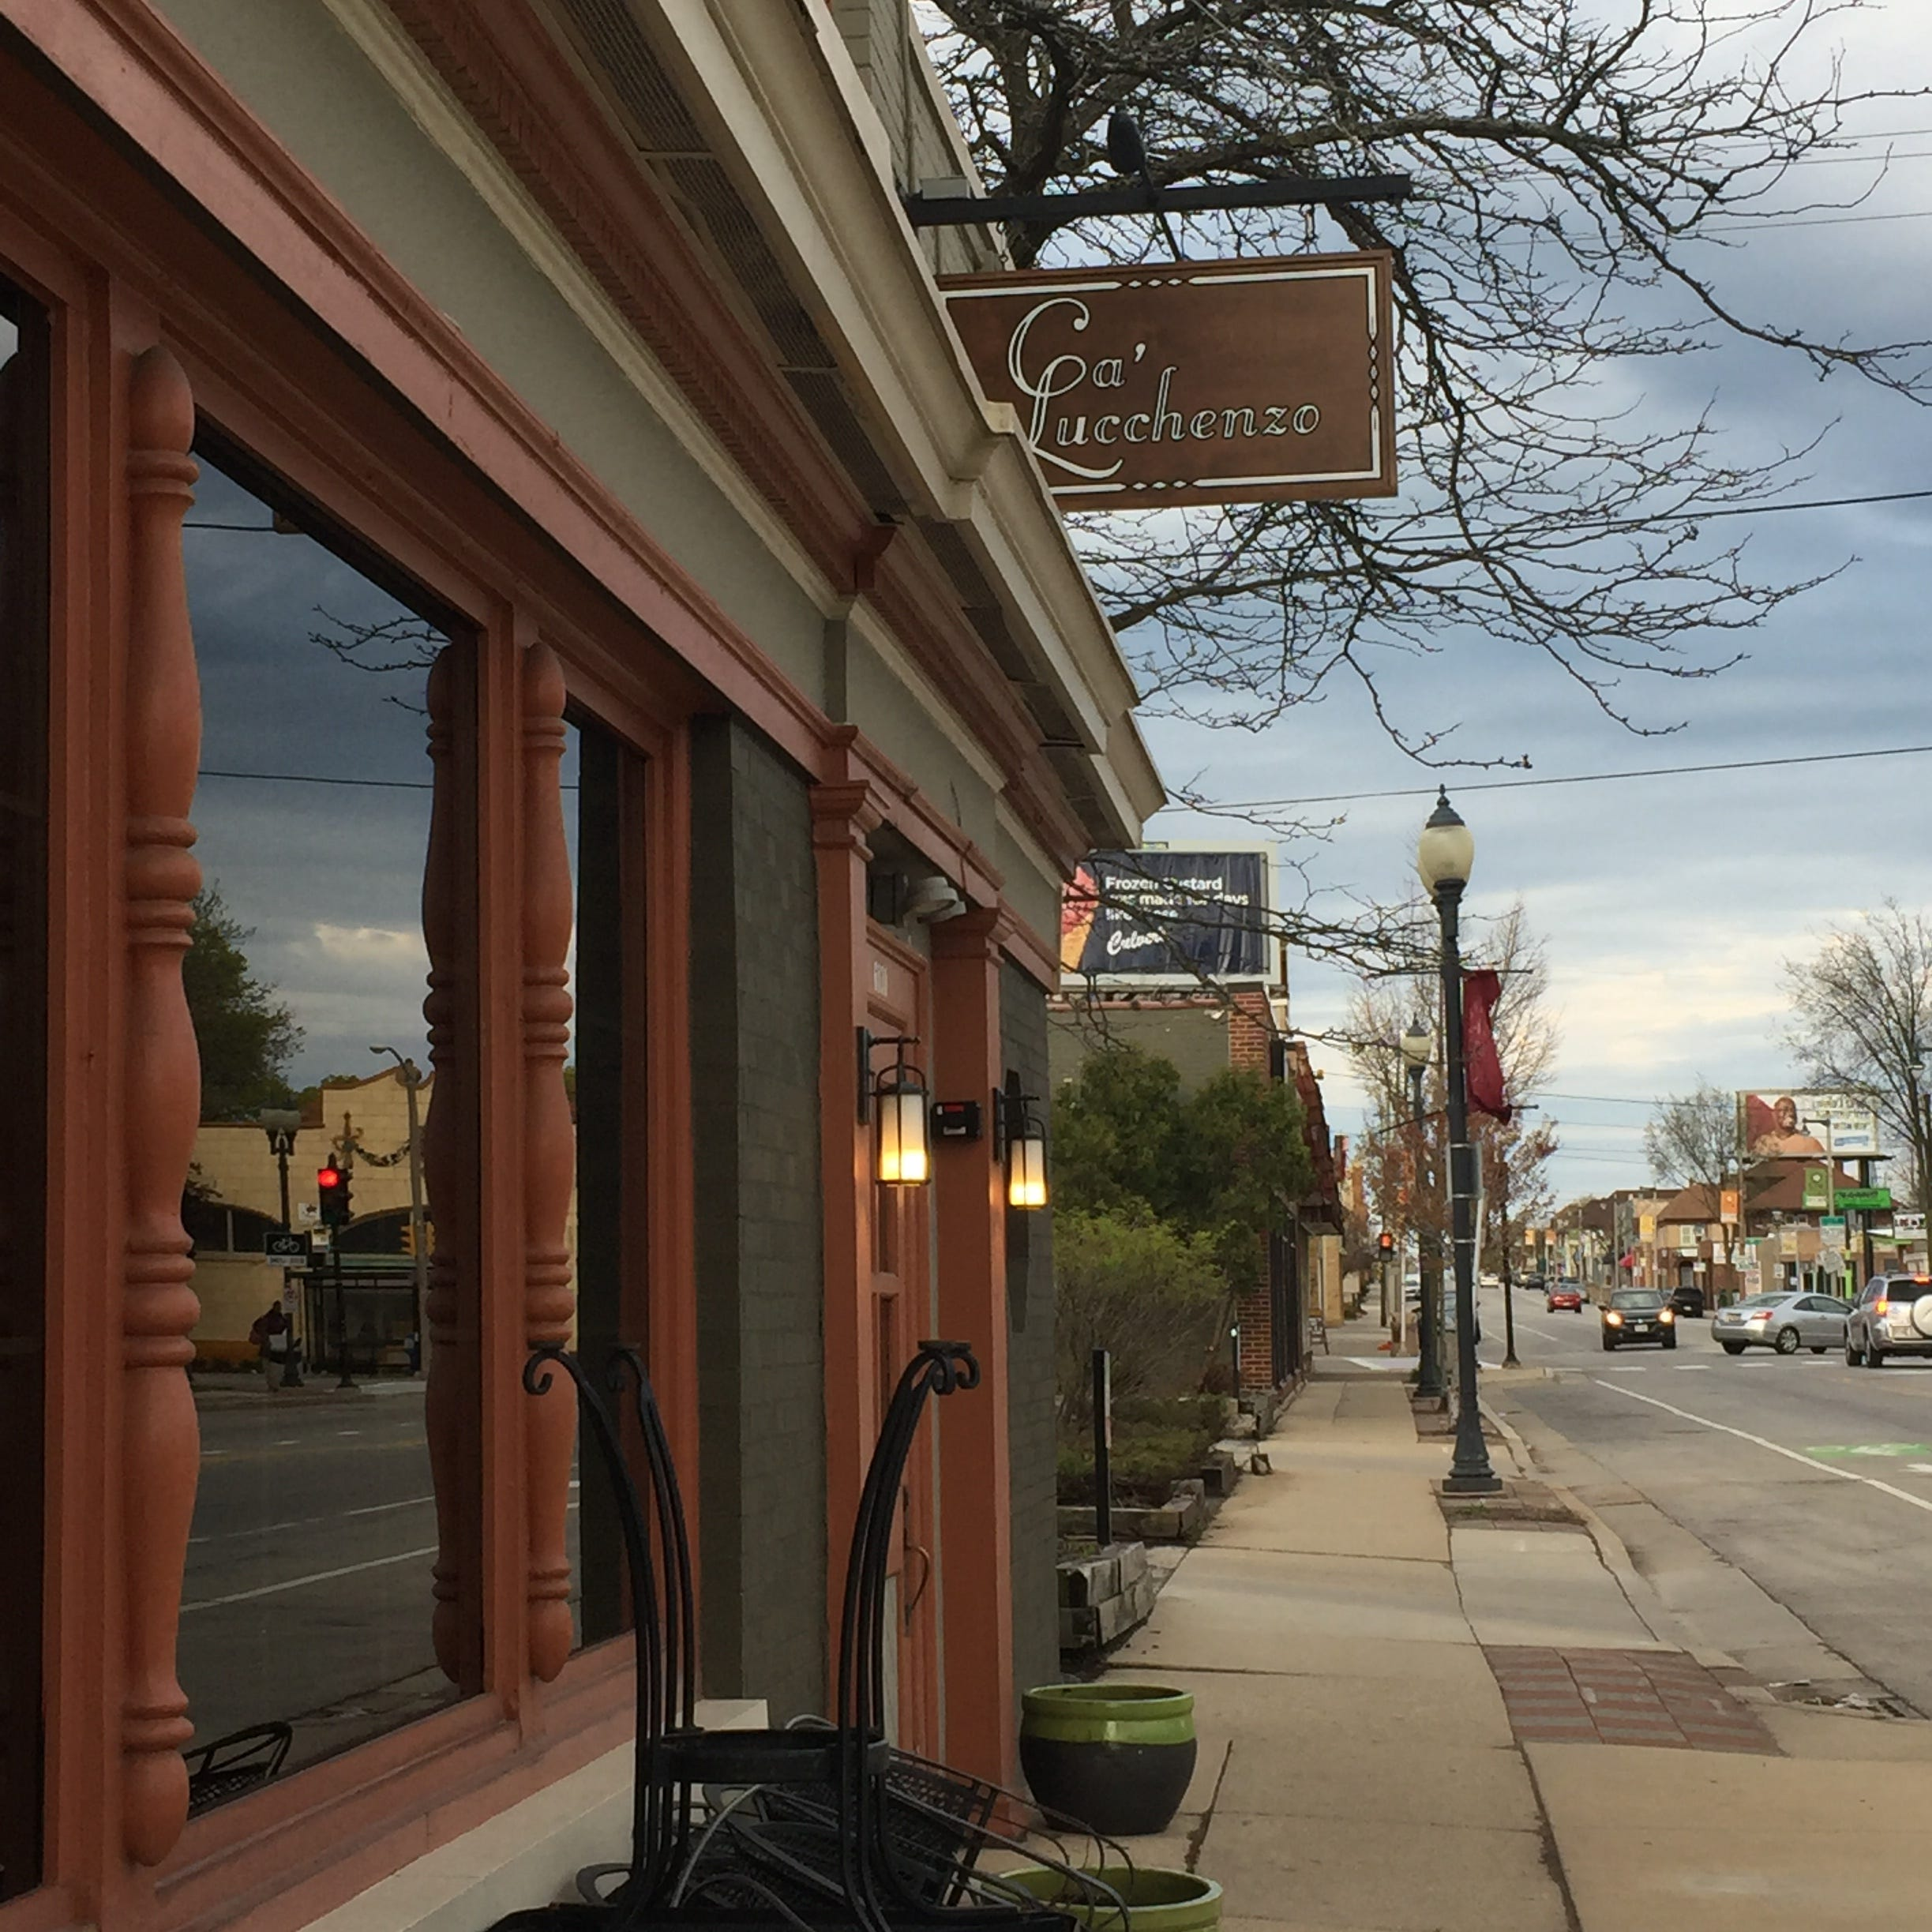 Pasta shop, Italian restaurant and wine bar Ca'Lucchenzo opens to the public May 15 in Tosa